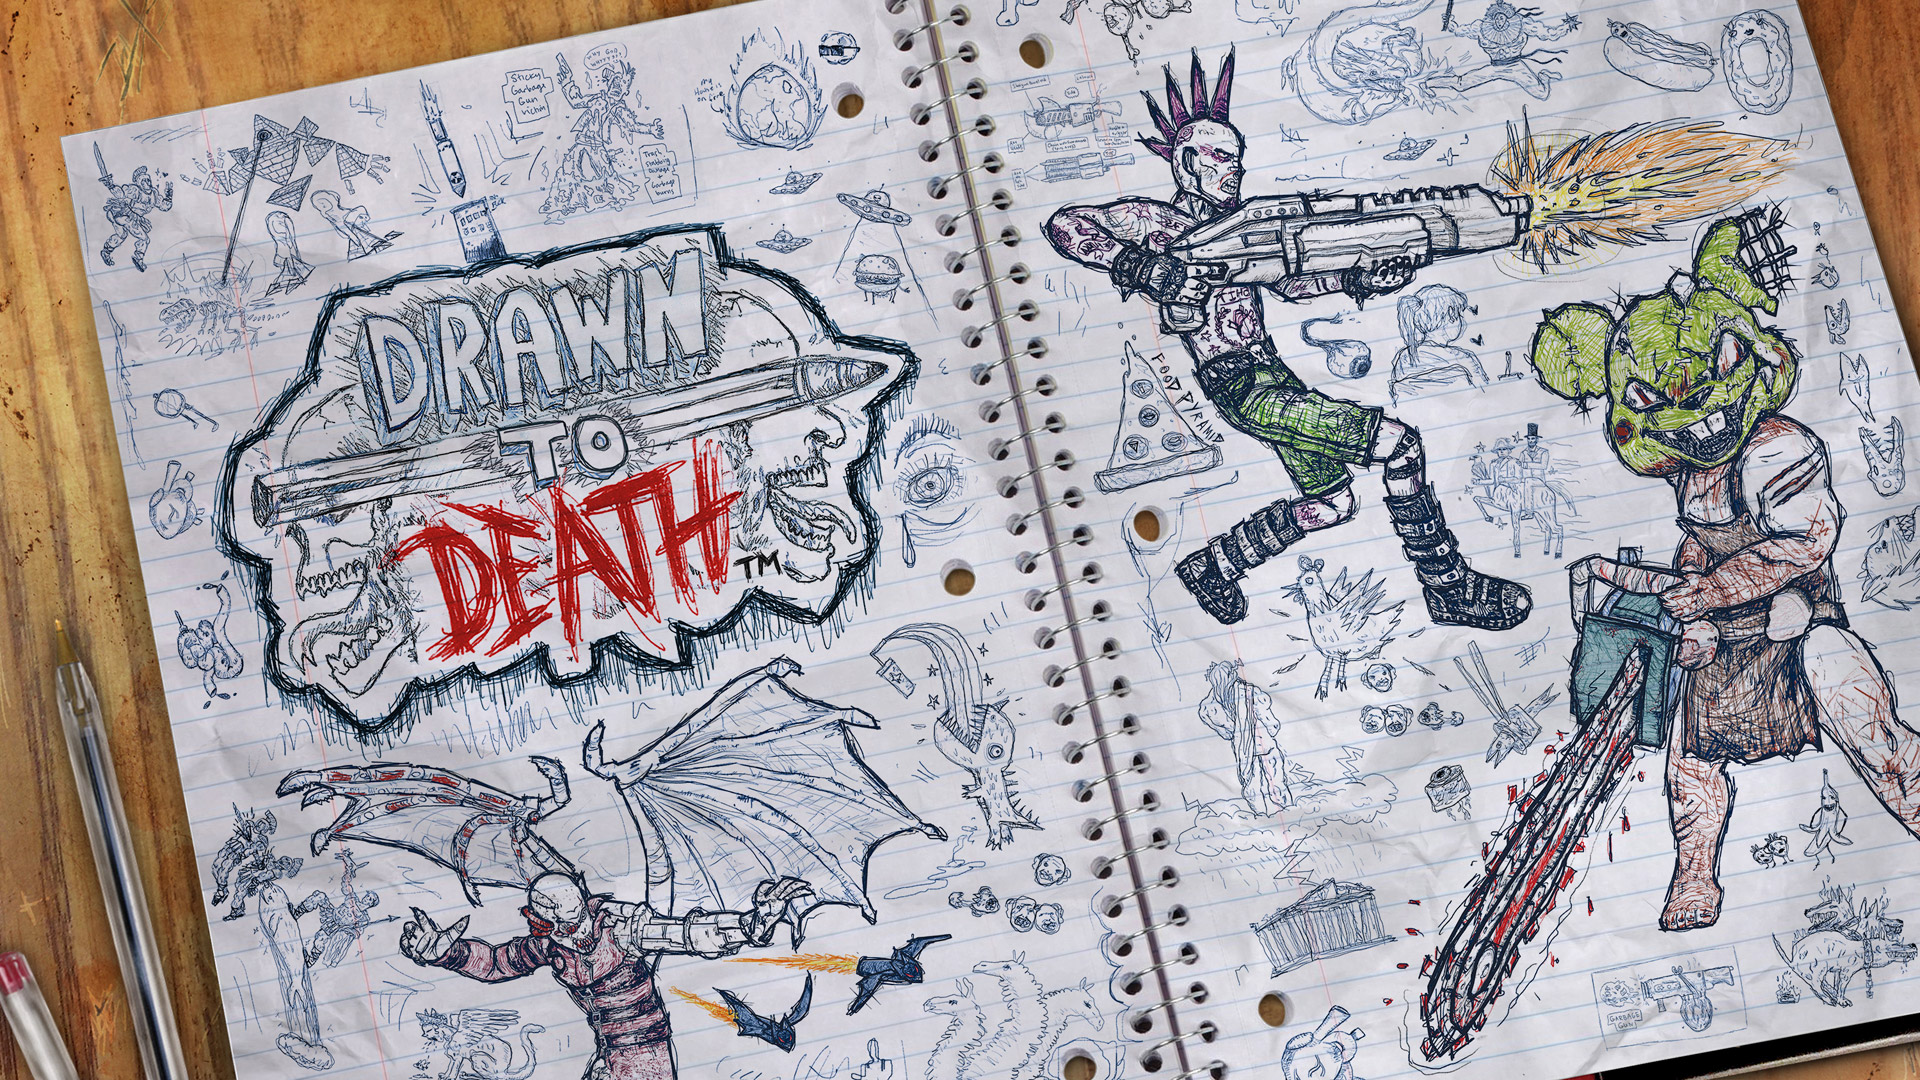 Free Drawn to Death Wallpaper in 1920x1080